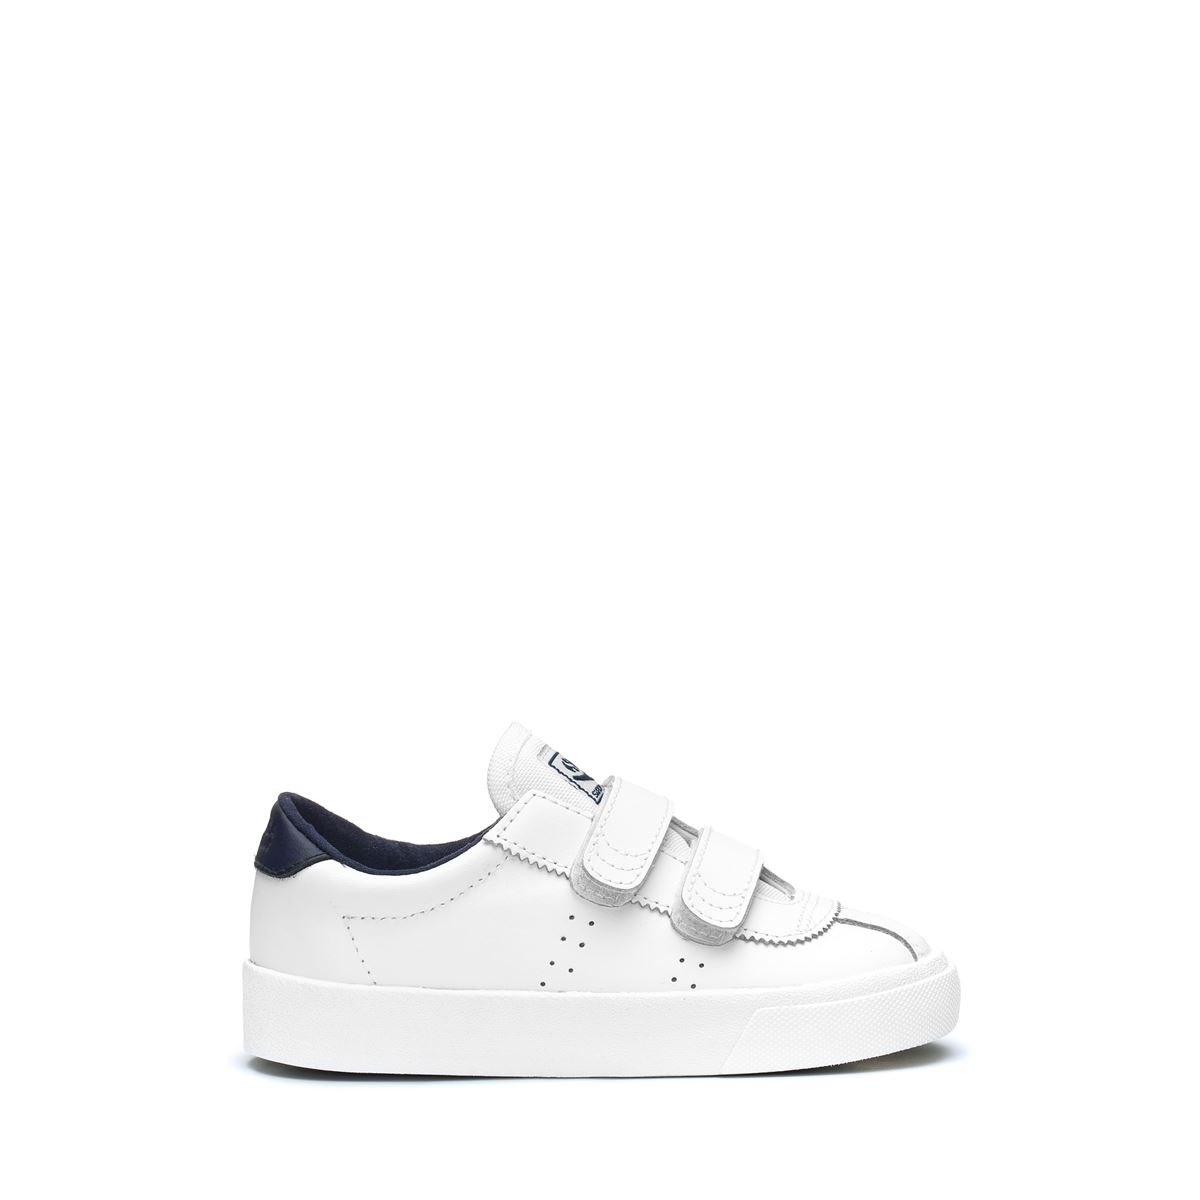 Italian Sneakers Superga for kid men and women-S1112YW